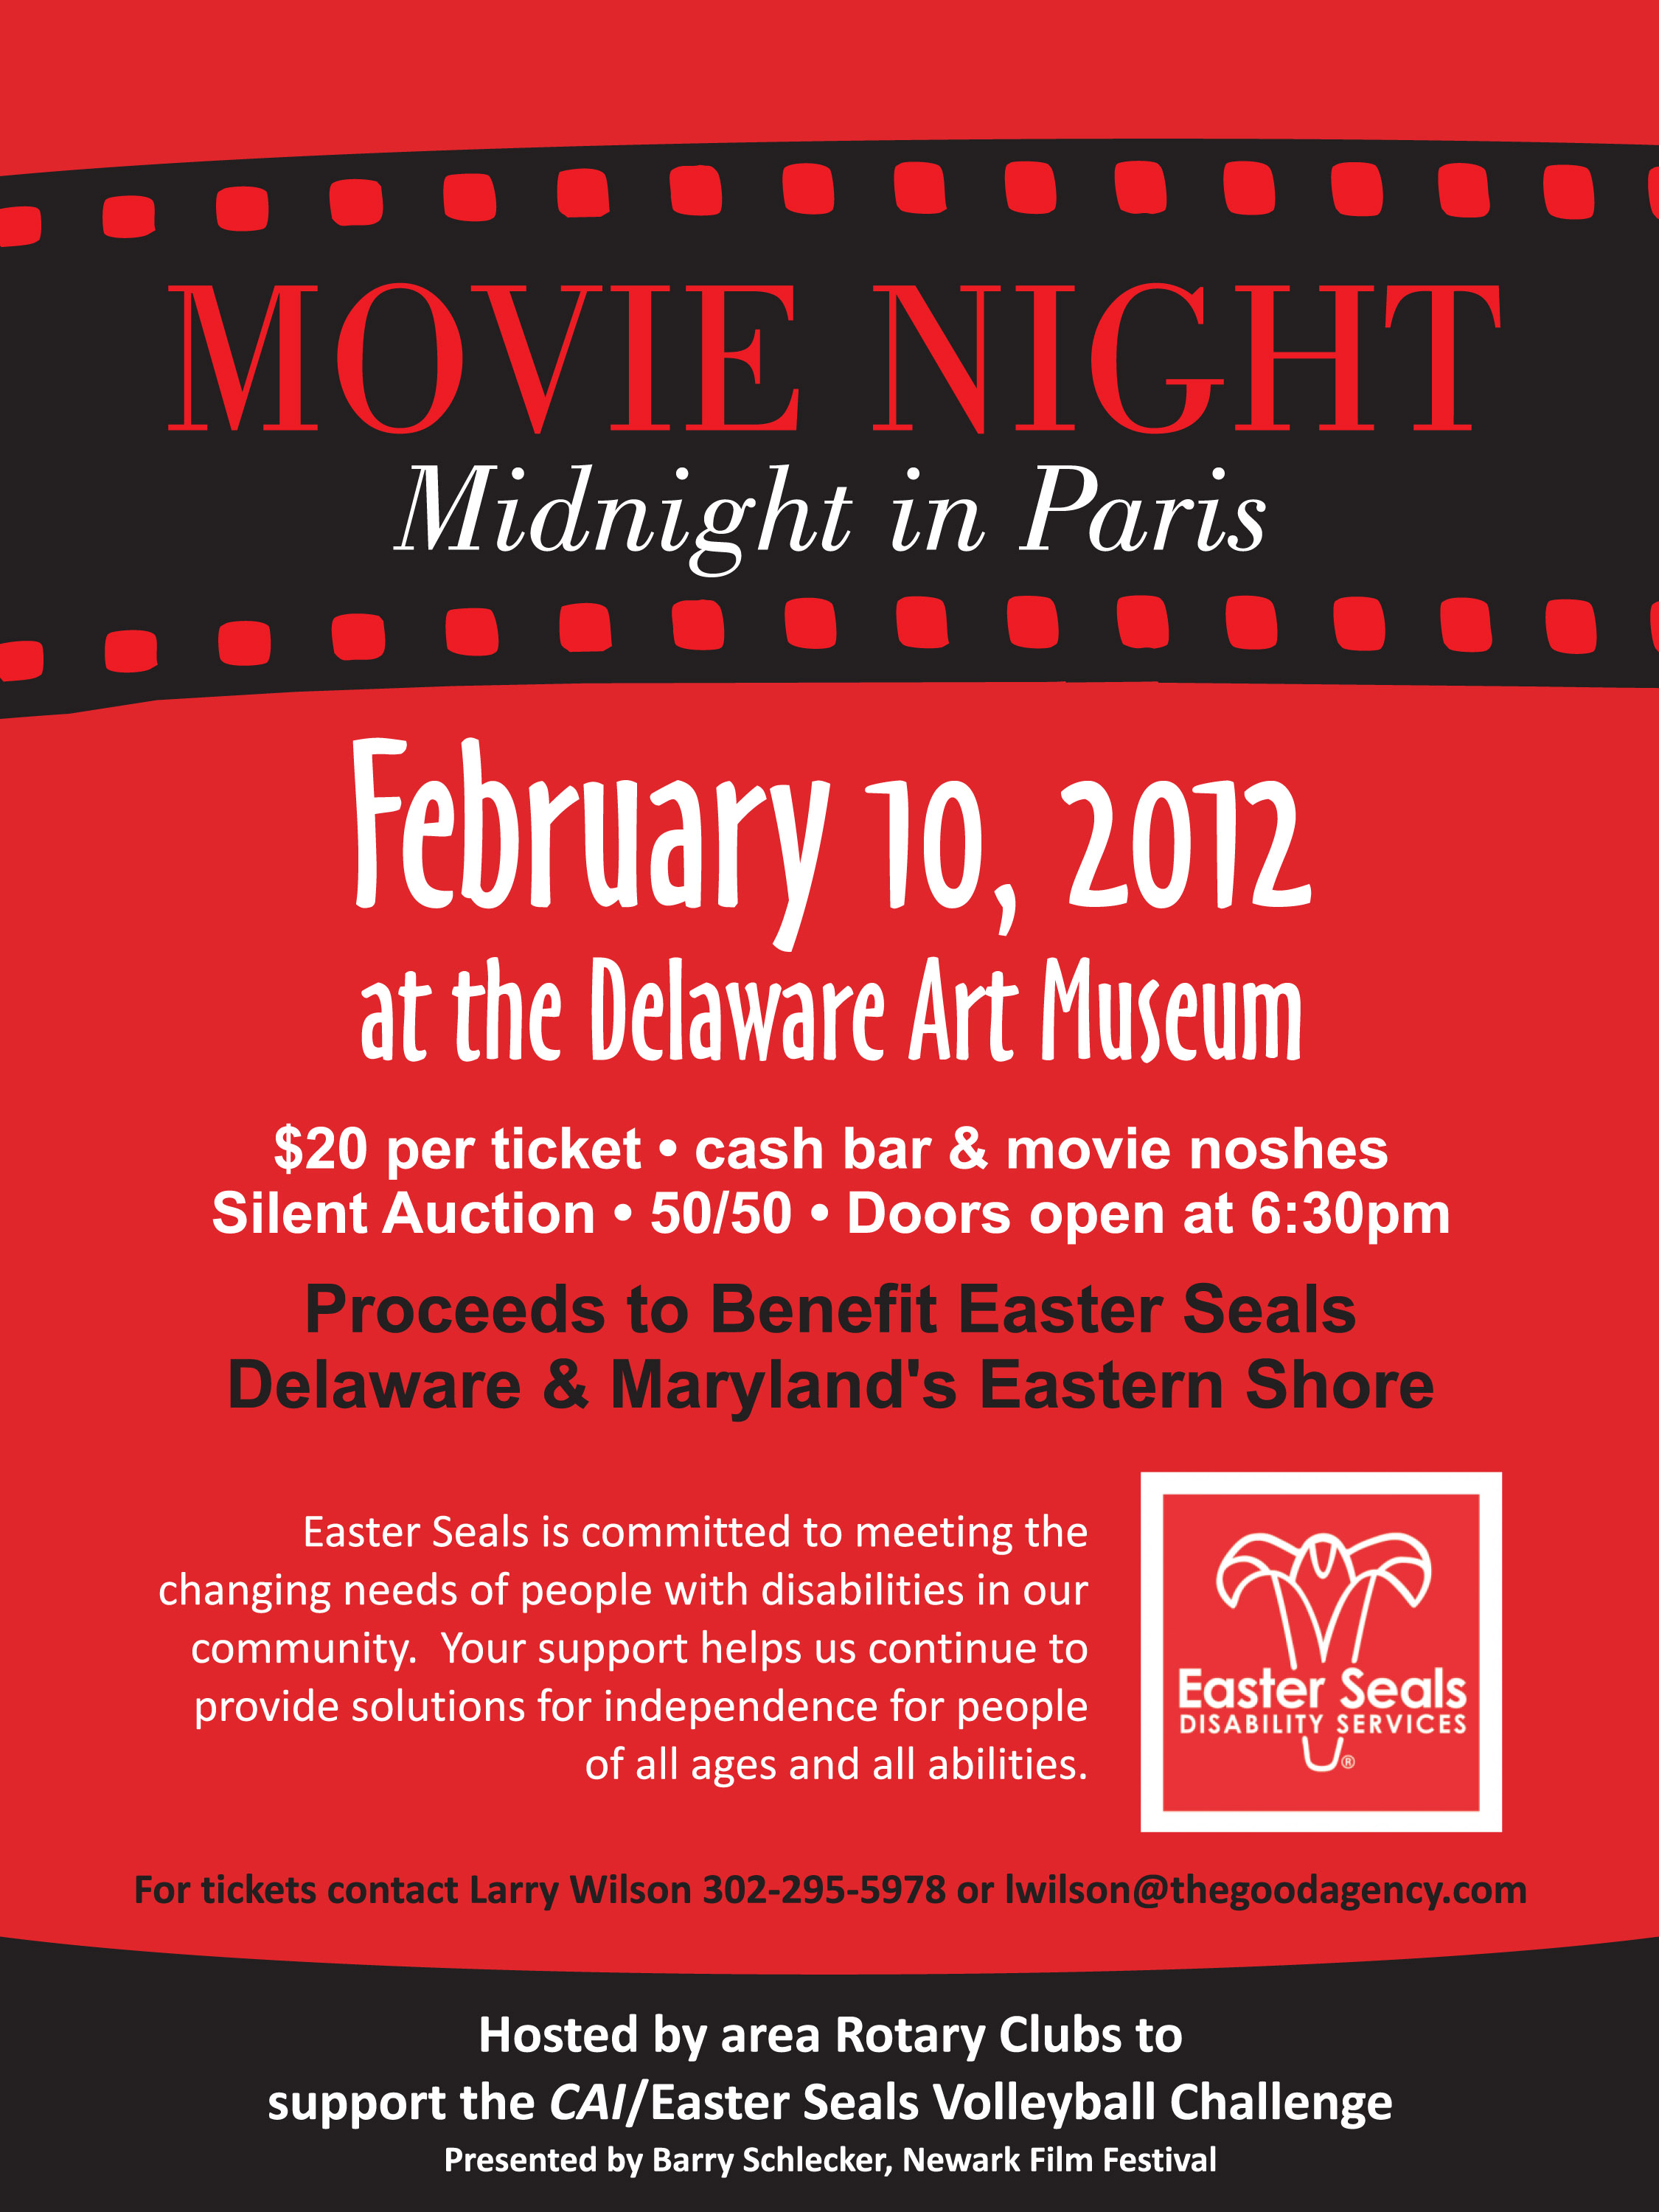 easter seals movie night flyer[1] copy.jpg